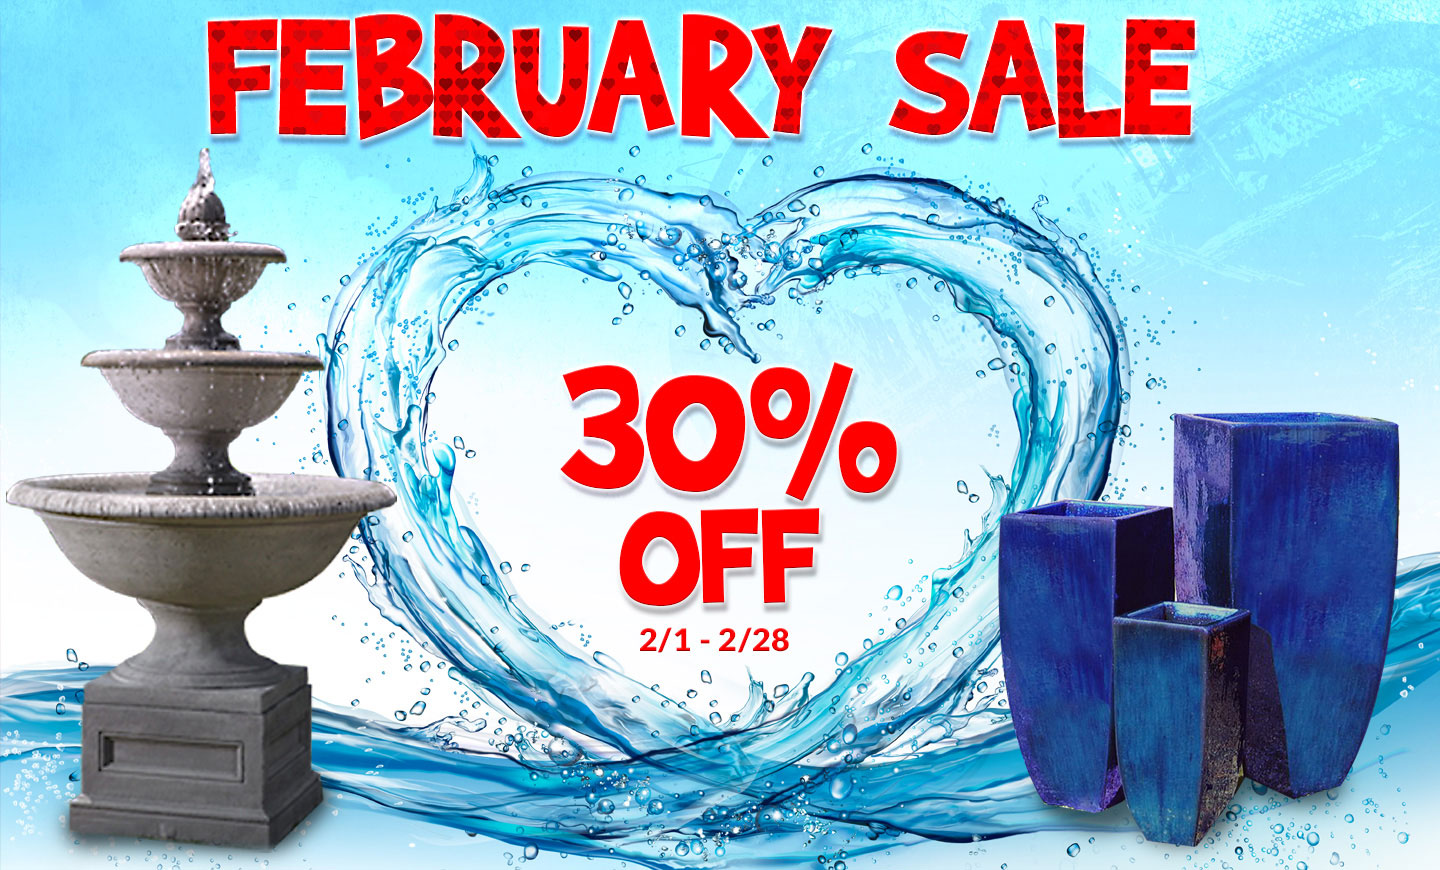 FEBRUARY SALE - 30% OFF EVERTHING